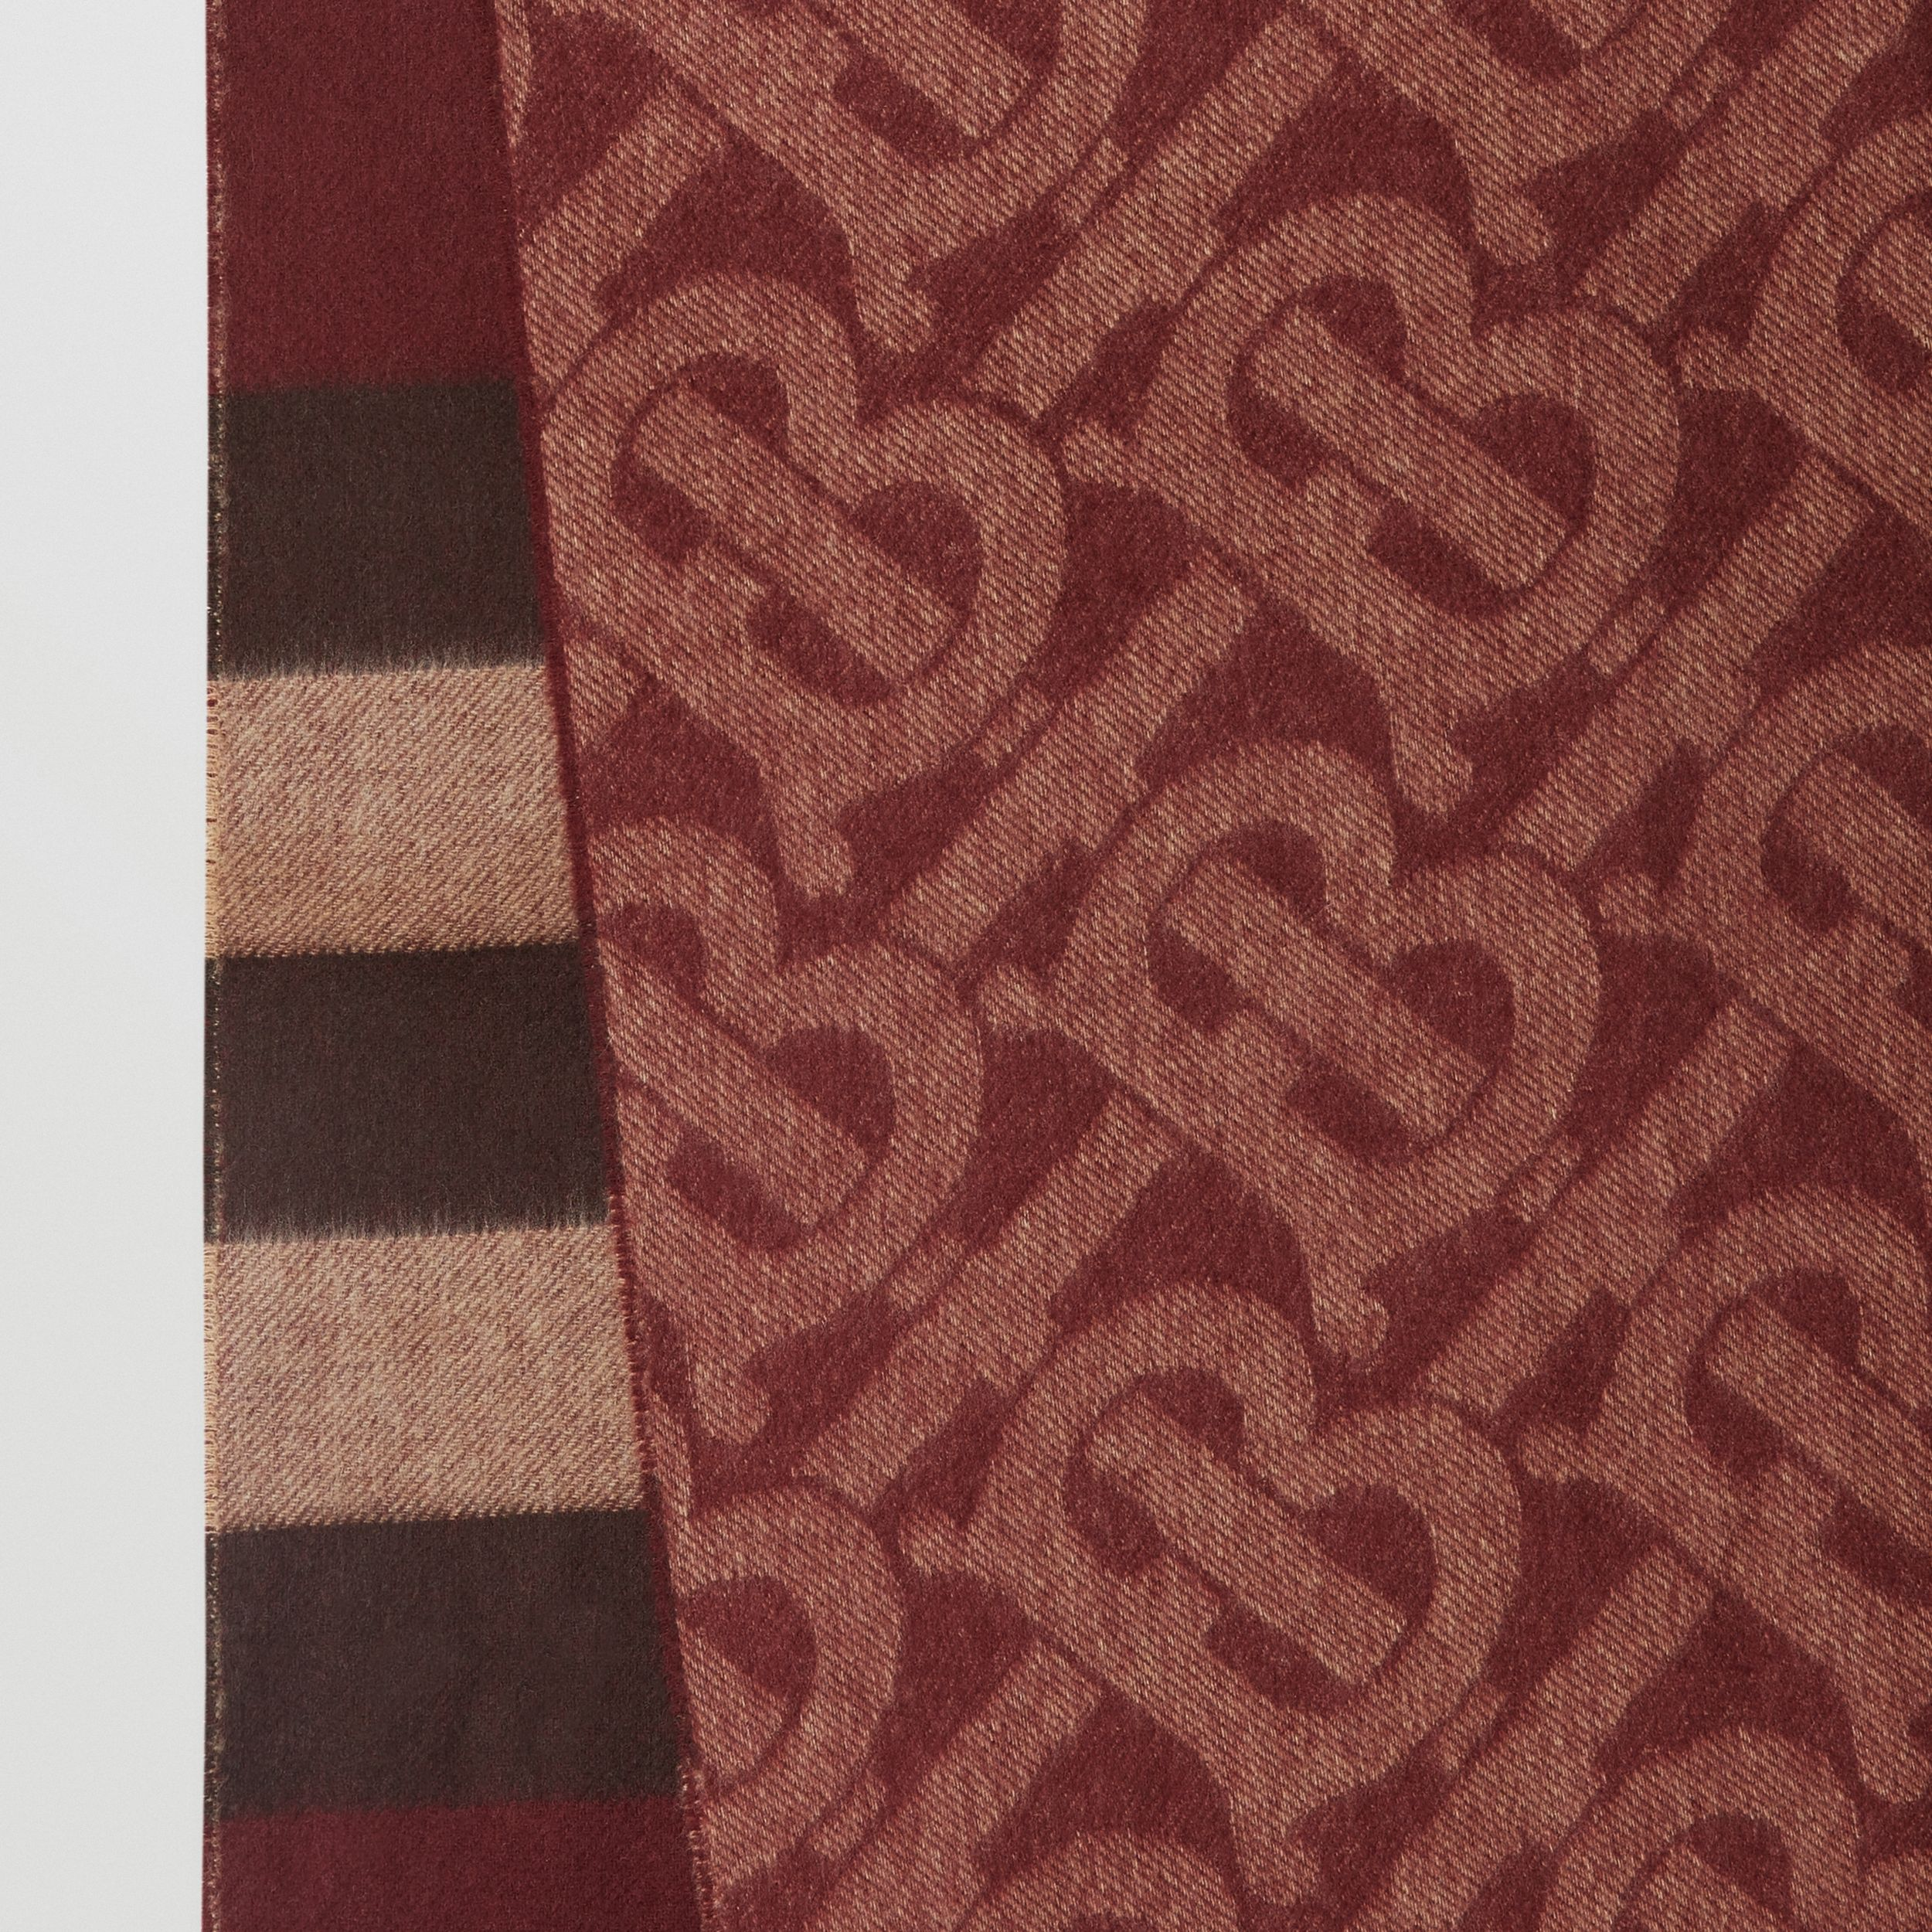 Reversible Check and Monogram Cashmere Scarf in Burgundy | Burberry Singapore - 2